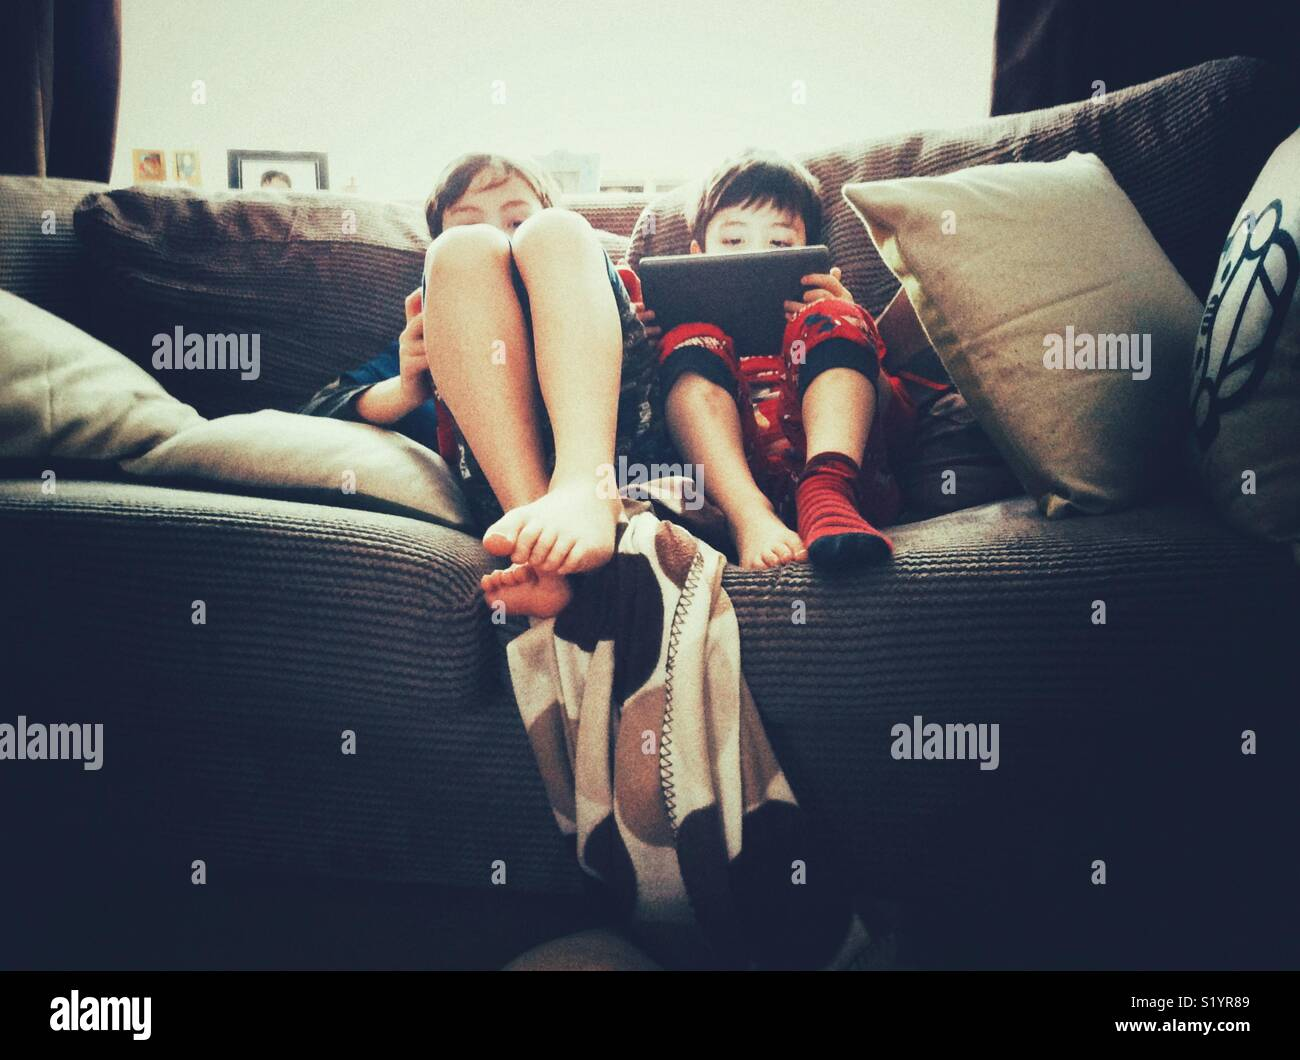 Two young brothers sat together on a sofa playing games on tablet PCs. - Stock Image